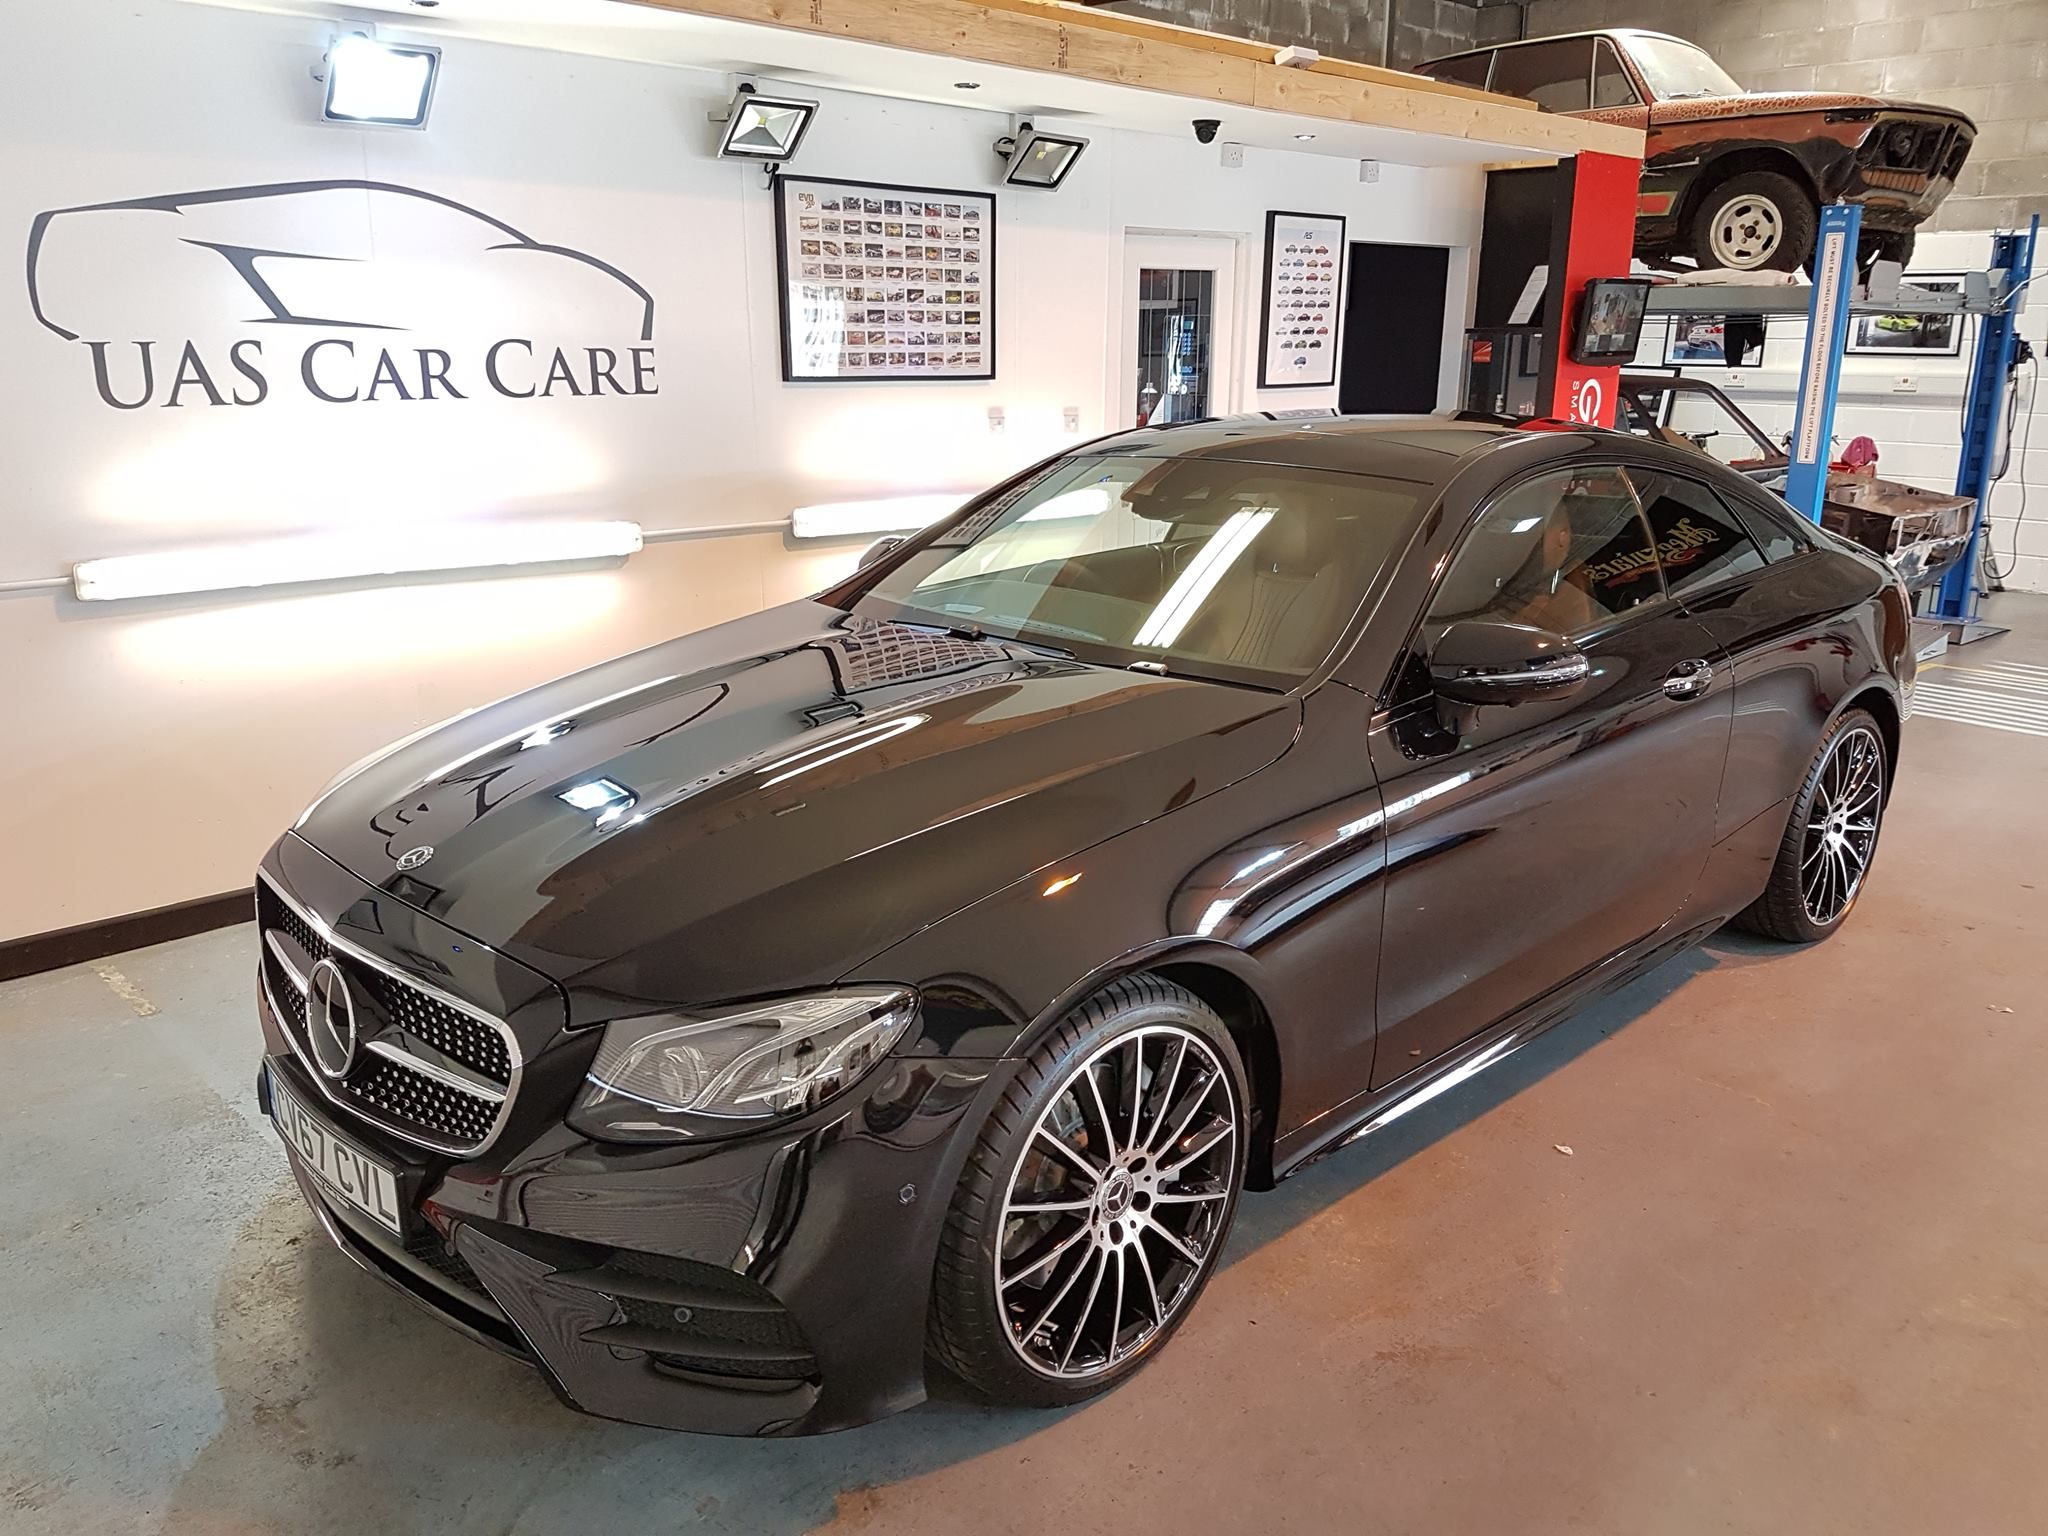 Stunning mirrorlike finish to this Mercedes with Crystal